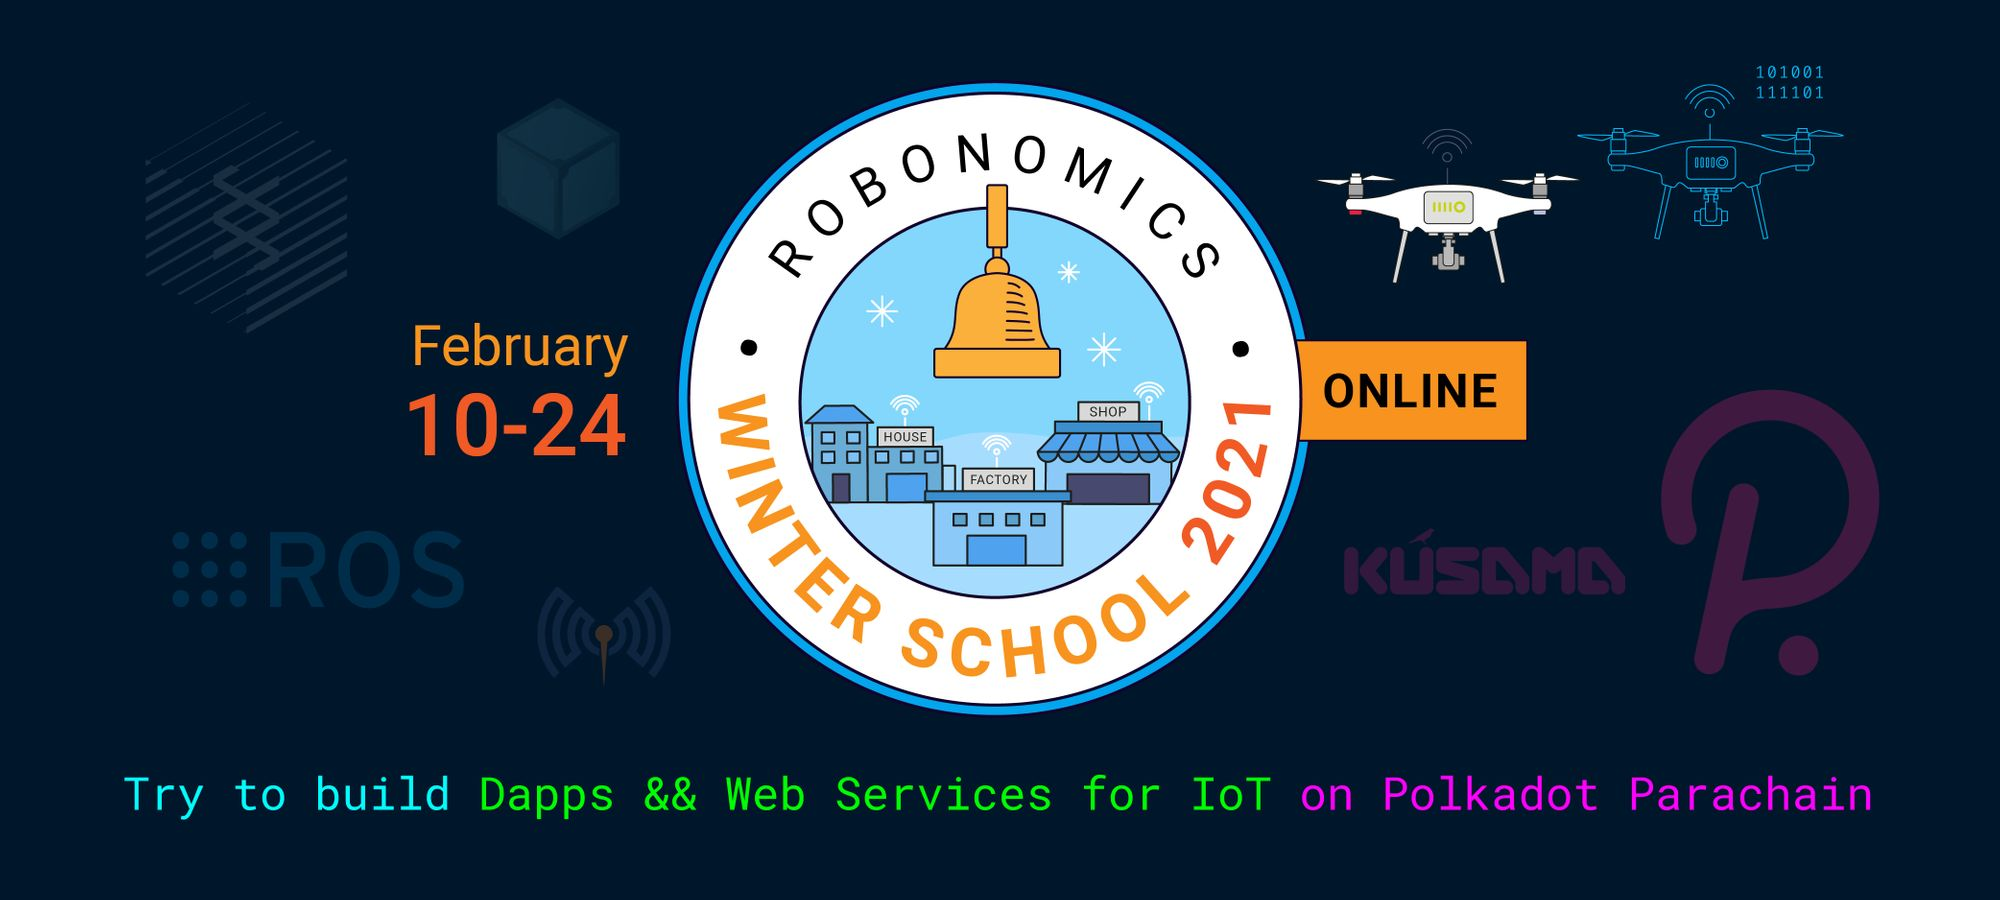 Robonomics Winter School 2021 Master Classes And Lectures Open For Attendees